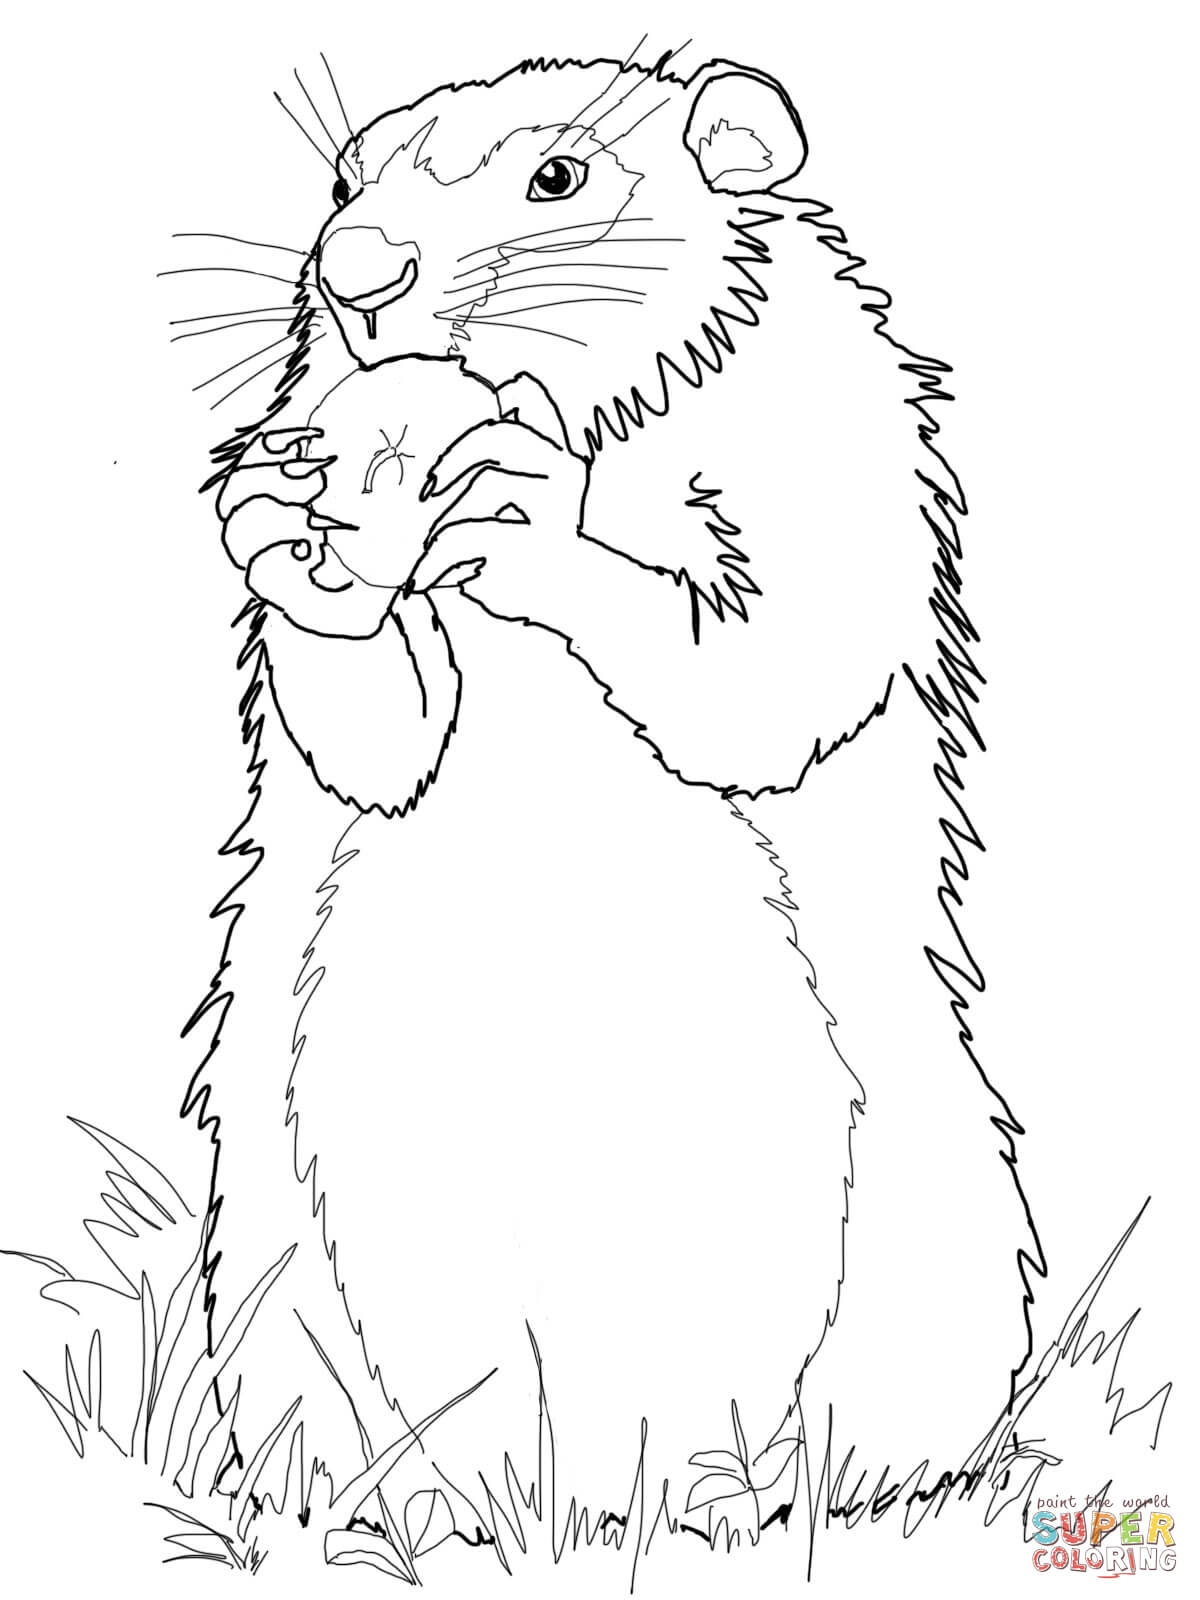 groundhog coloring page - 2